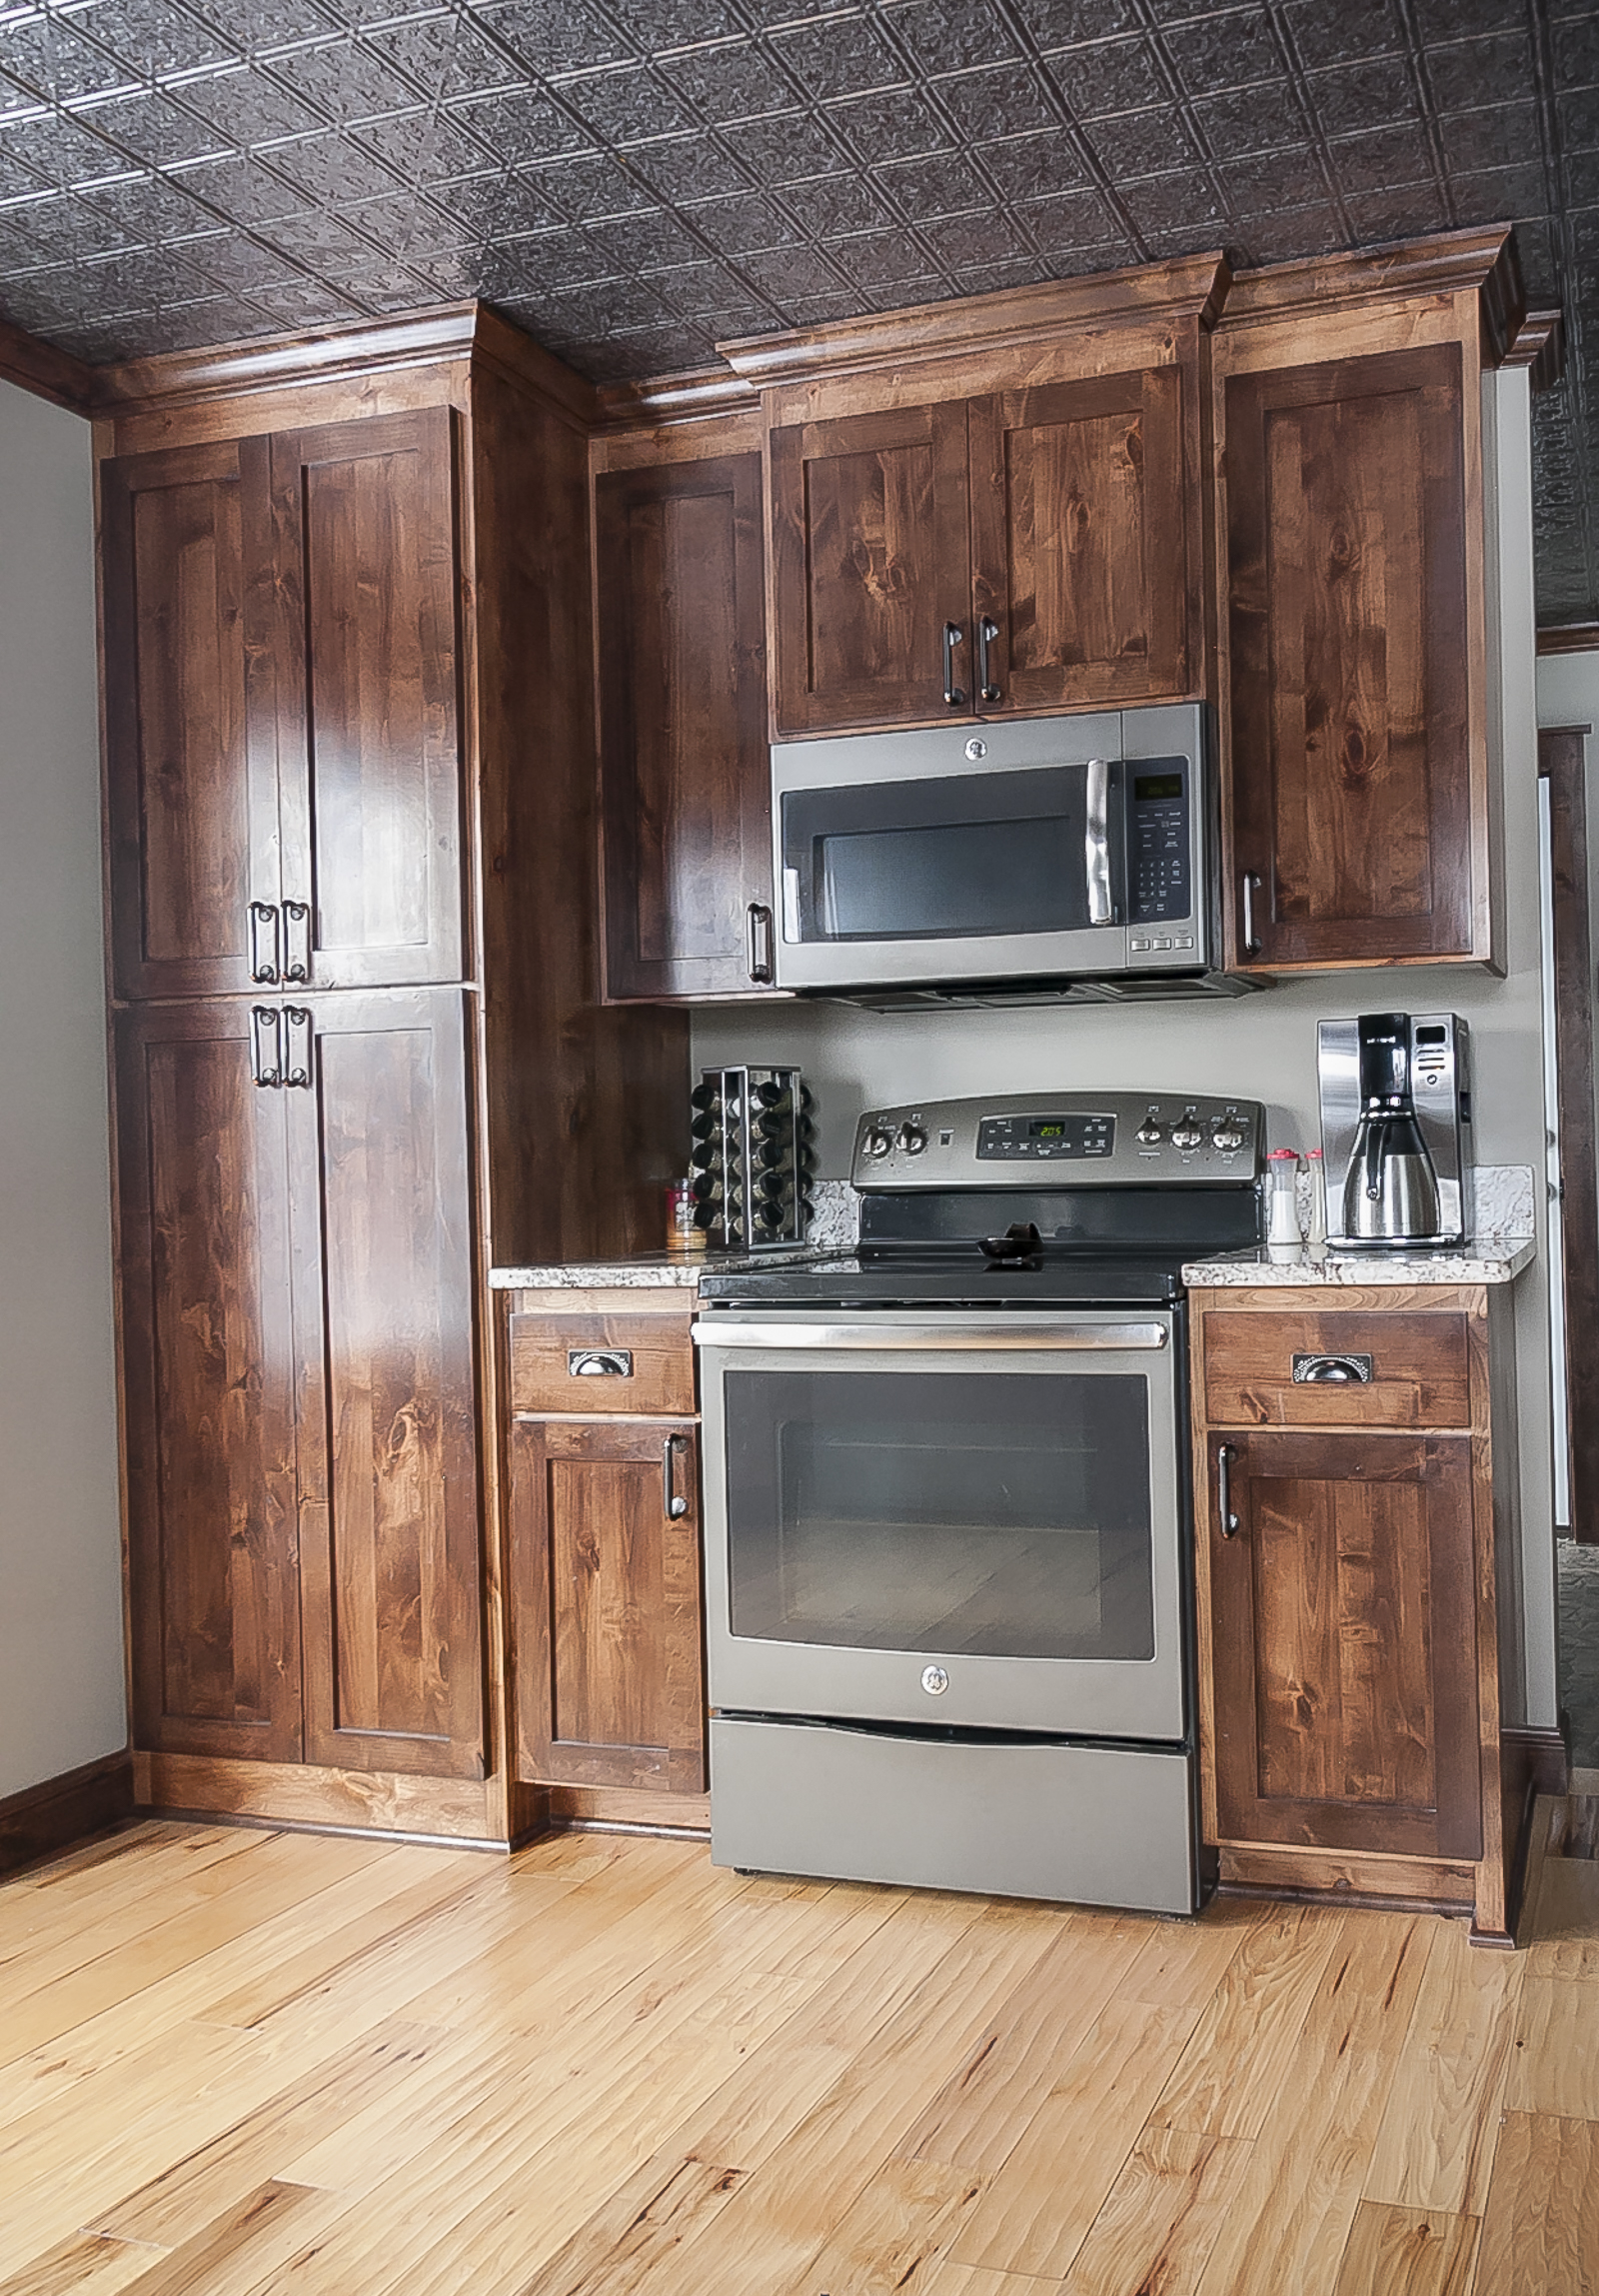 Rustic Alder Shaker Style Cabinetry Tin Ceiling Tiles And Hammered Copper Acents Are Charming Farmhouse Features Adding So Much Character Texture To